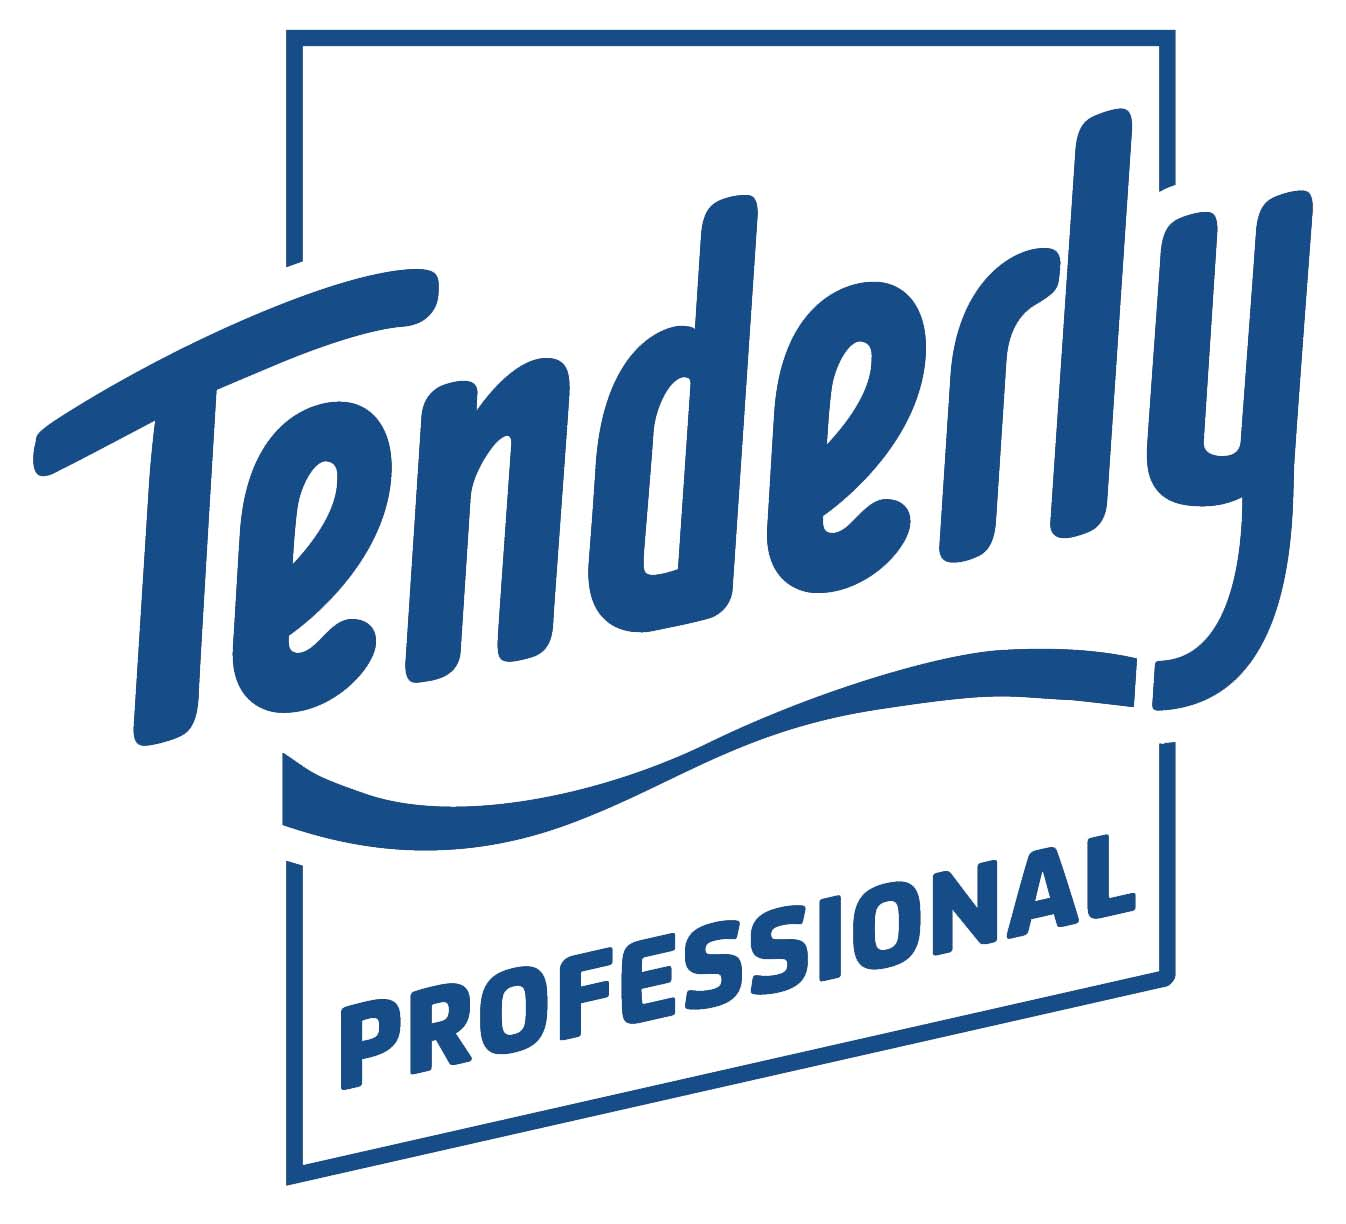 Tenderly Professional